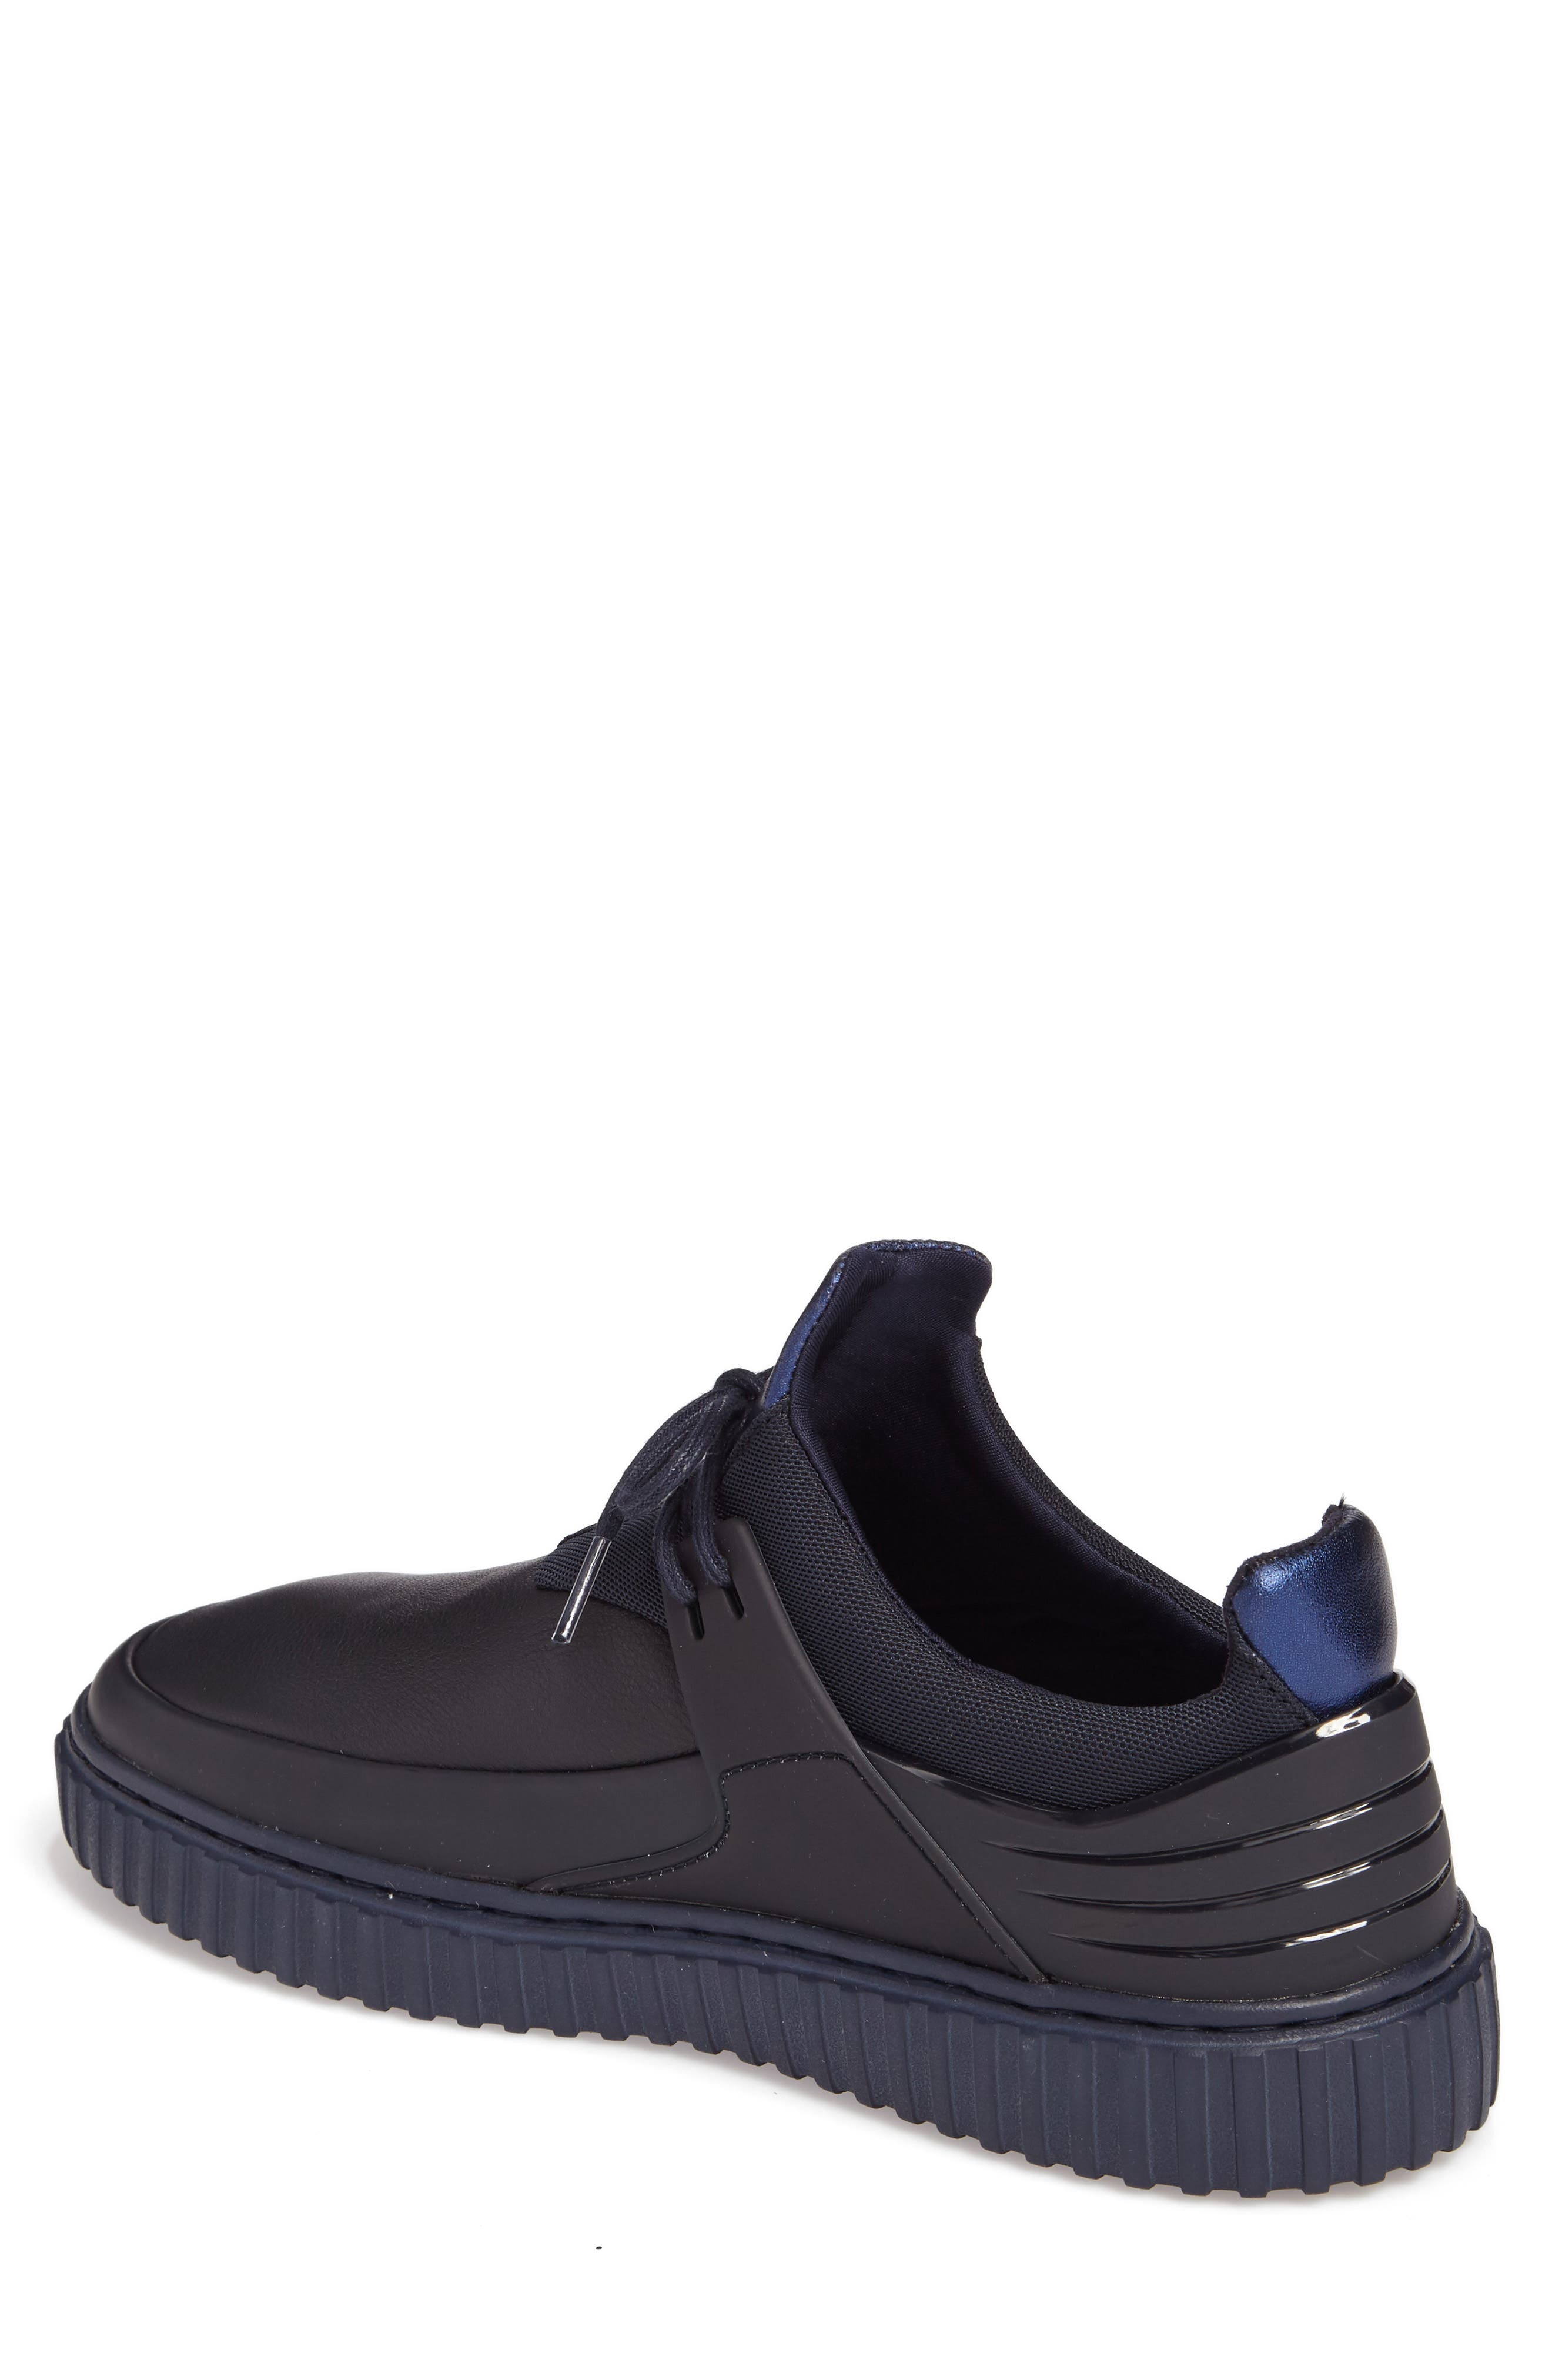 Castucci Mid Sneaker,                             Alternate thumbnail 2, color,                             Navy Leather